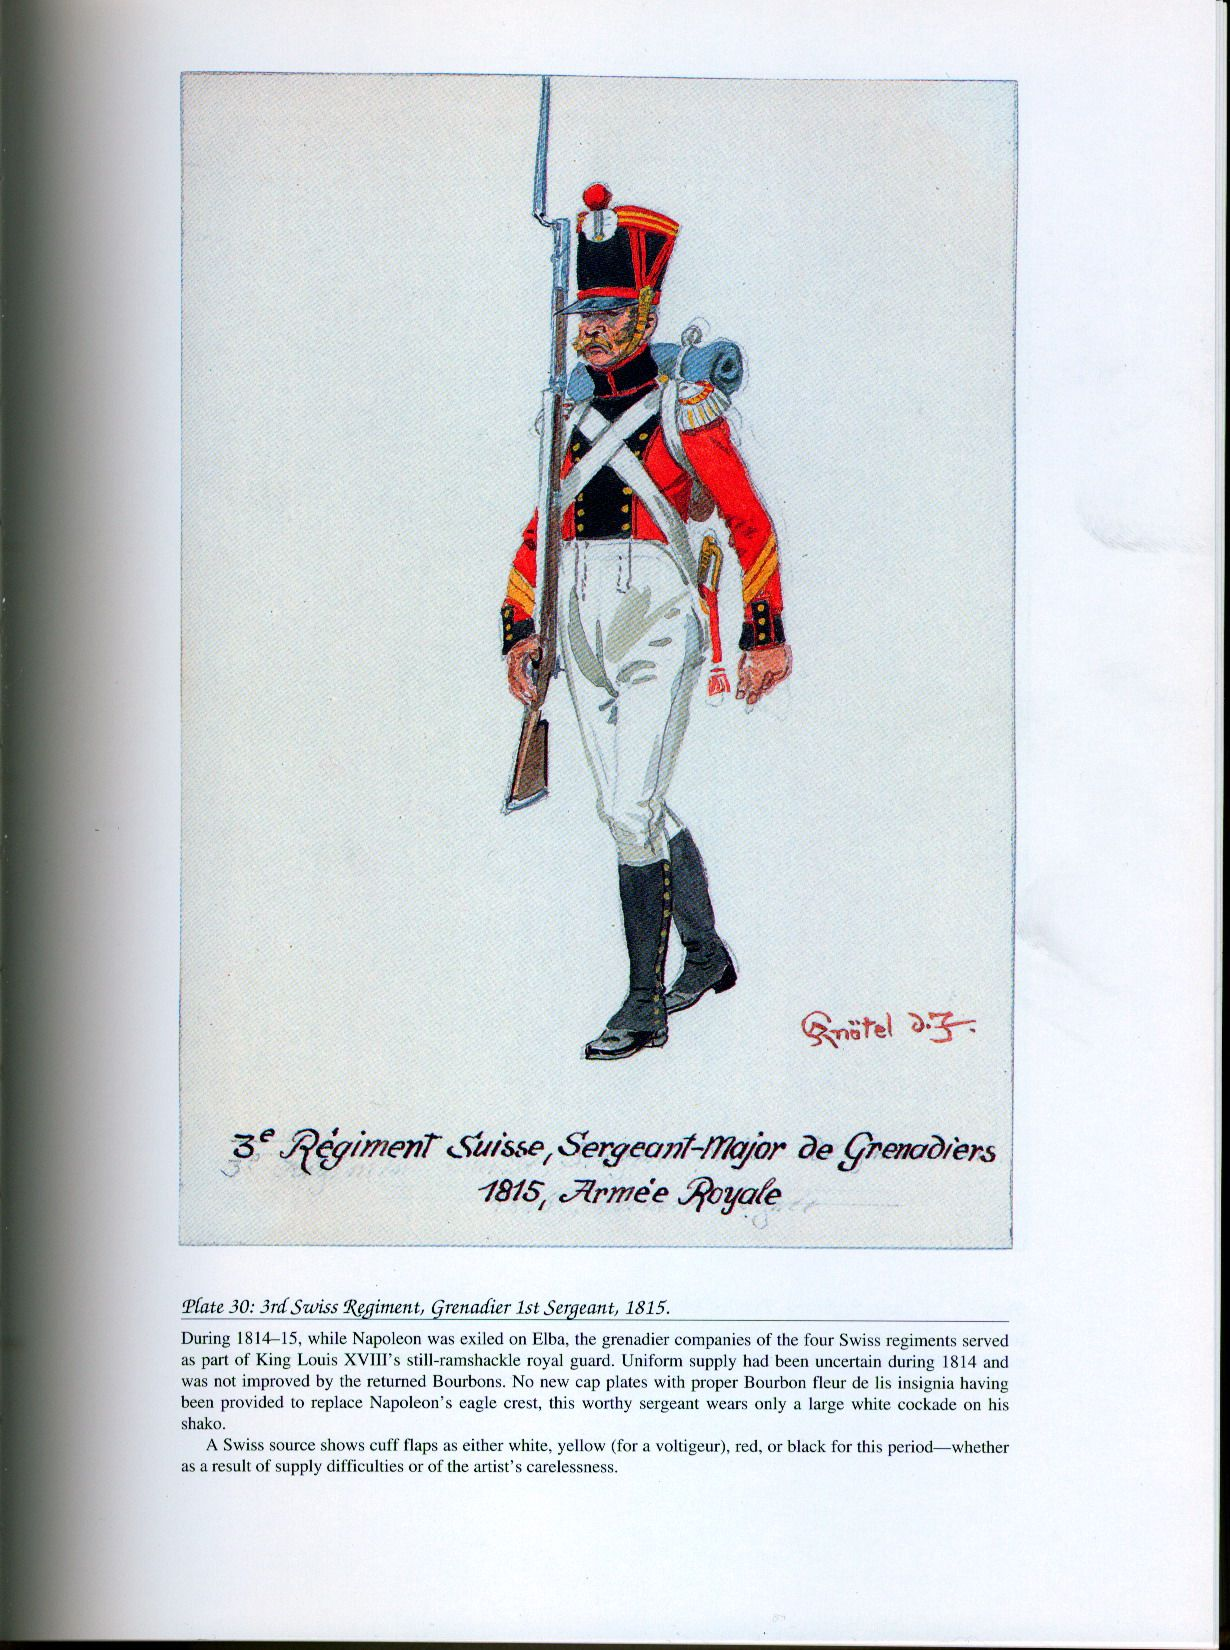 Foreign Troops: Plate 30: 3rd Swiss Regiment, Grenadier 1st Sergeant, 1815.